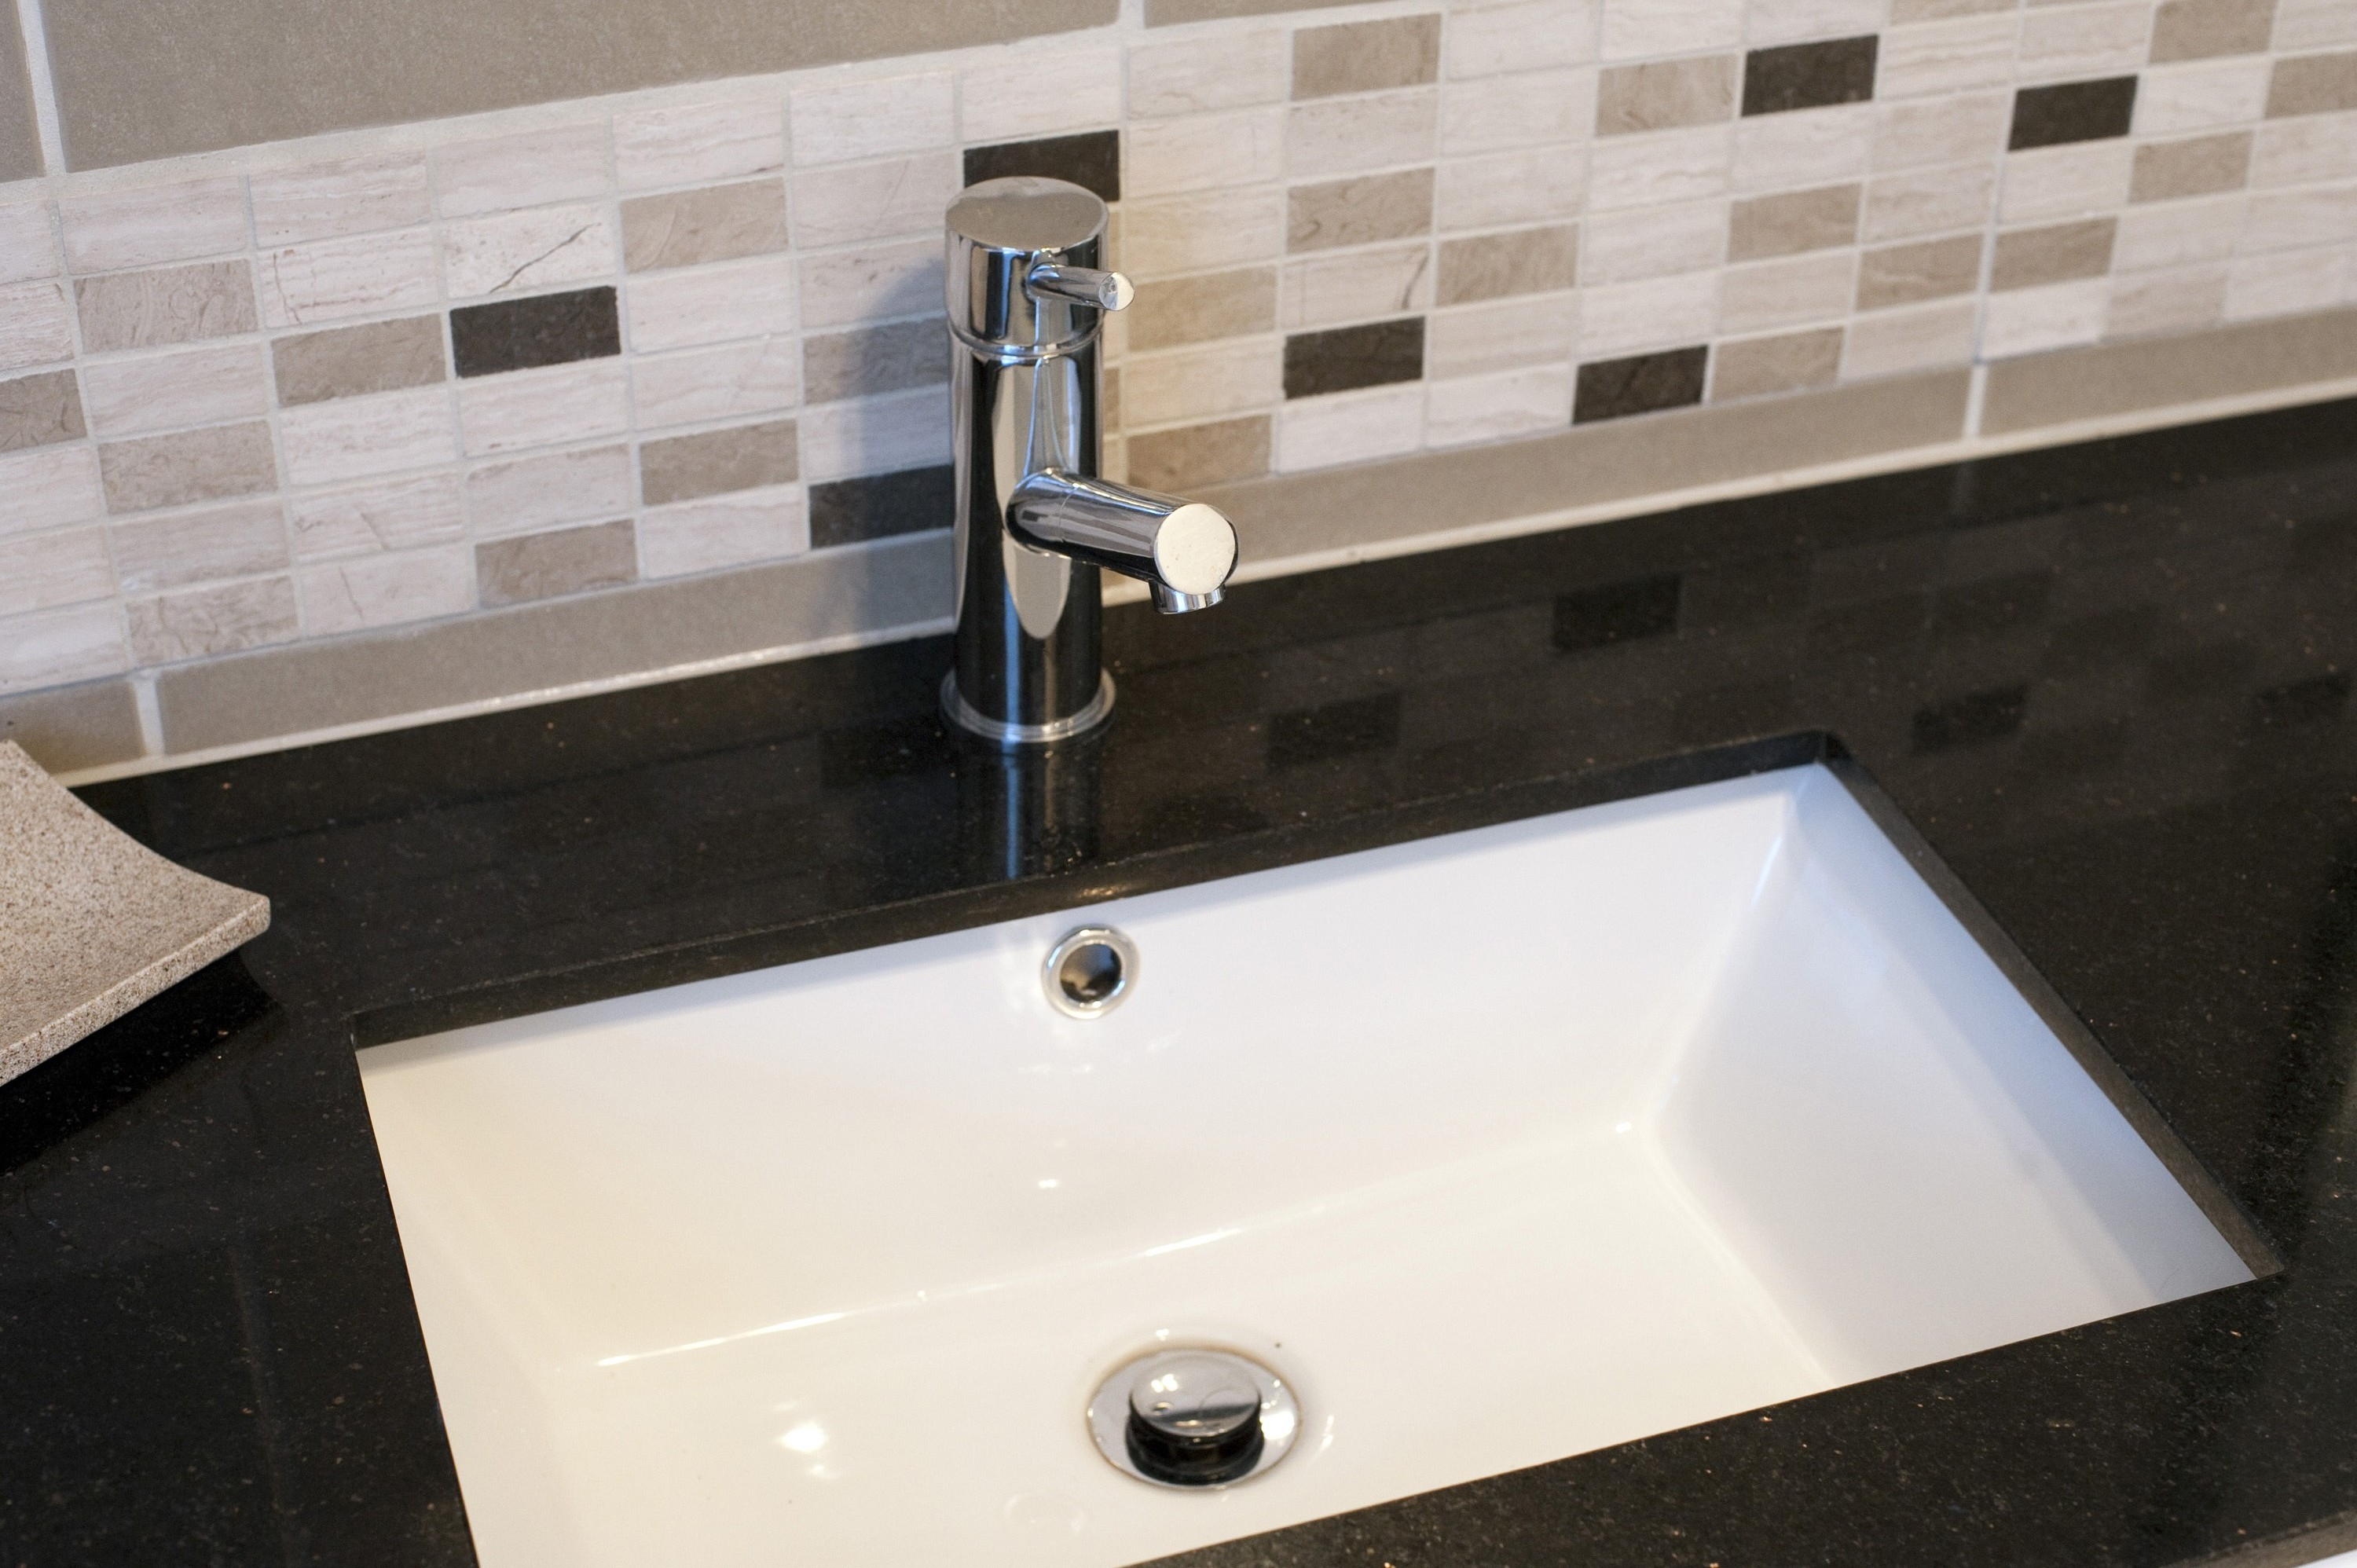 Beautiful Free Image Of Bathroom Sink for Square Bathroom Sinks